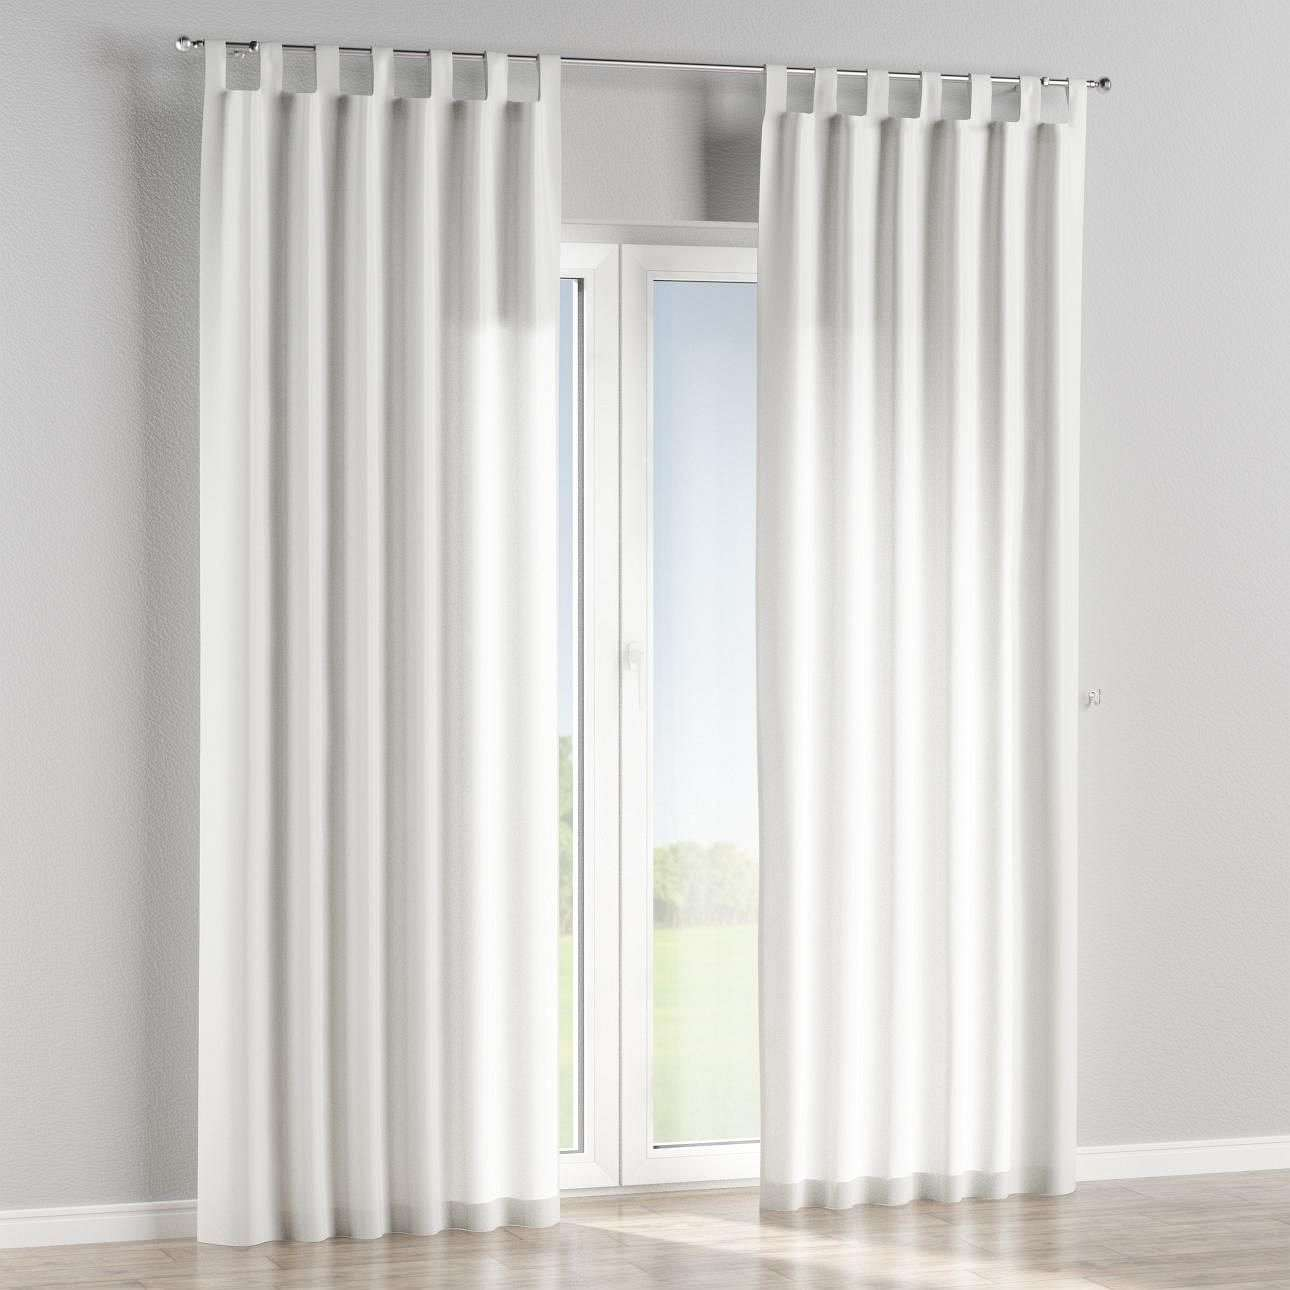 Tab top lined curtains in collection Rustica, fabric: 138-19